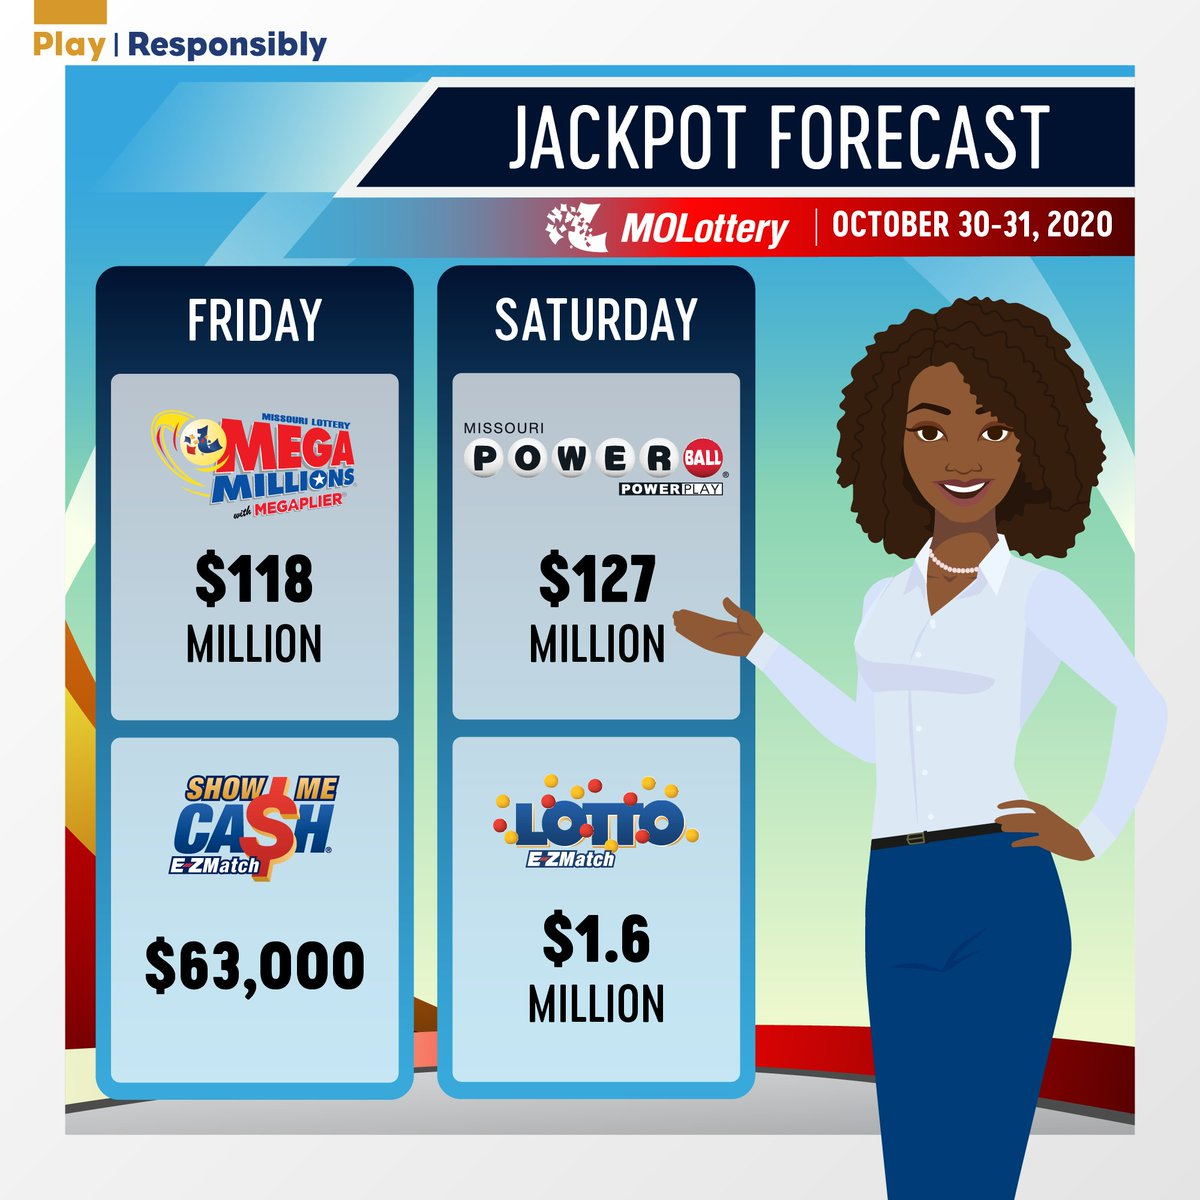 Happy Hallo-WIN weekend! 🎃 No tricks, there are over $240 million in jackpot treats this weekend! #MOLottery #JackpotForecast #Powerball #MegaMillions #ShowMeCash #Lotto https://t.co/WB7Uylw9UX